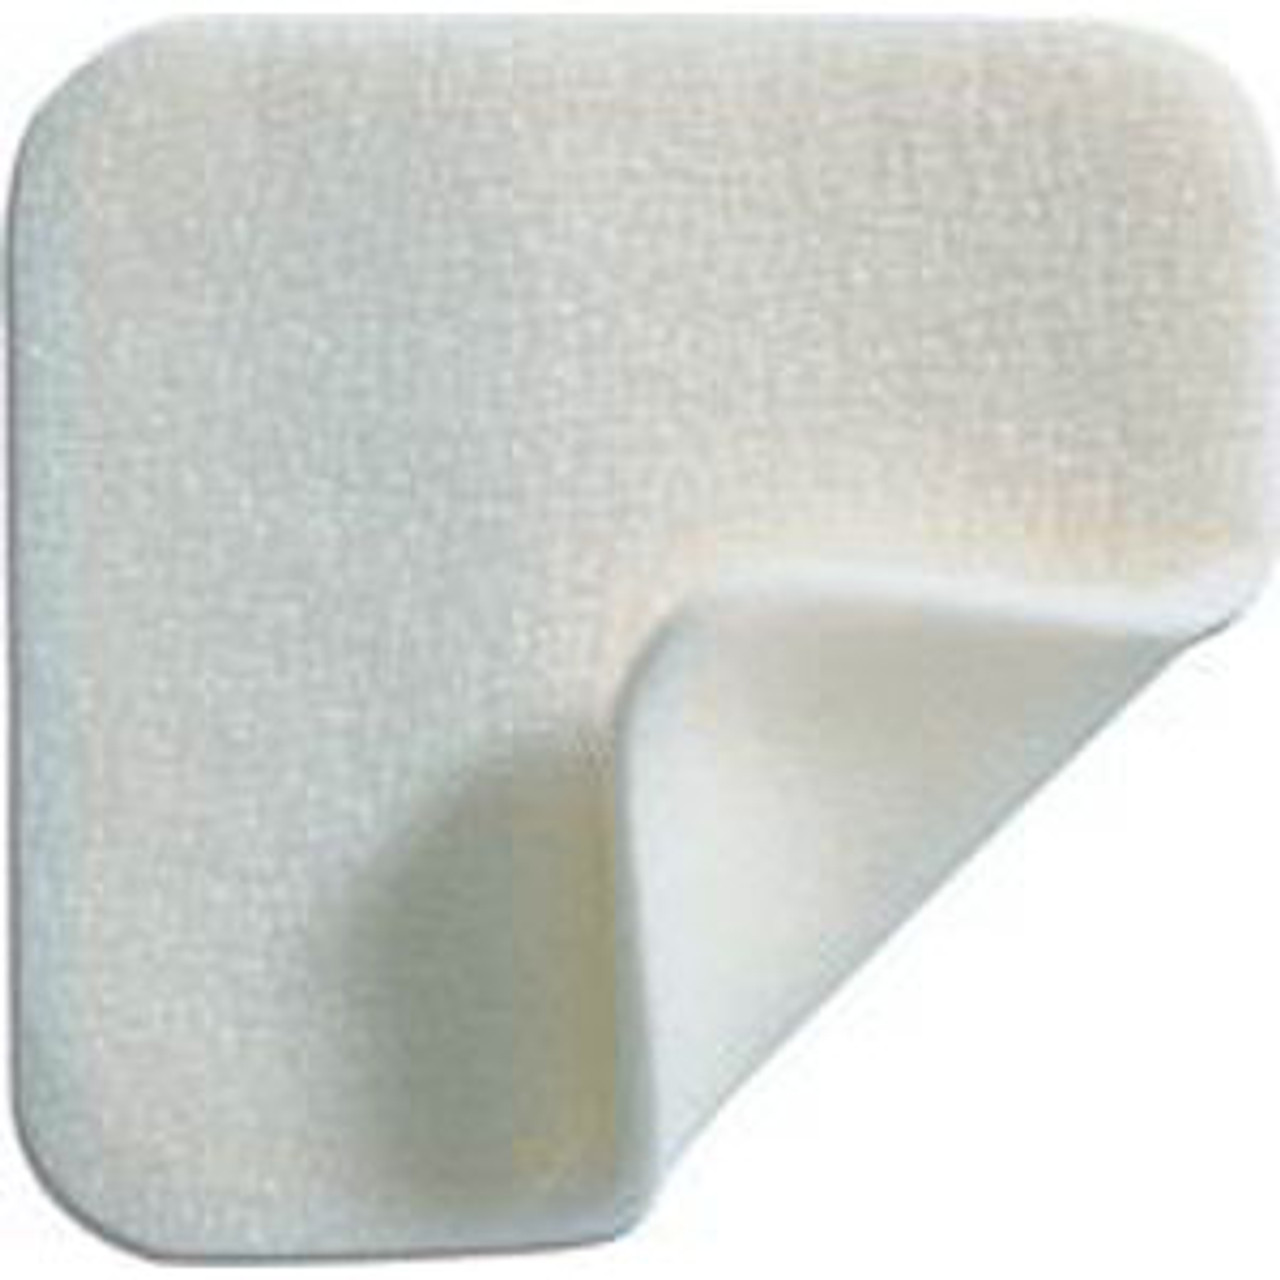 Mepilex -Soft and conformable foam dressing: 4˝ x 4˝ (10 x 10 cm) 5/box